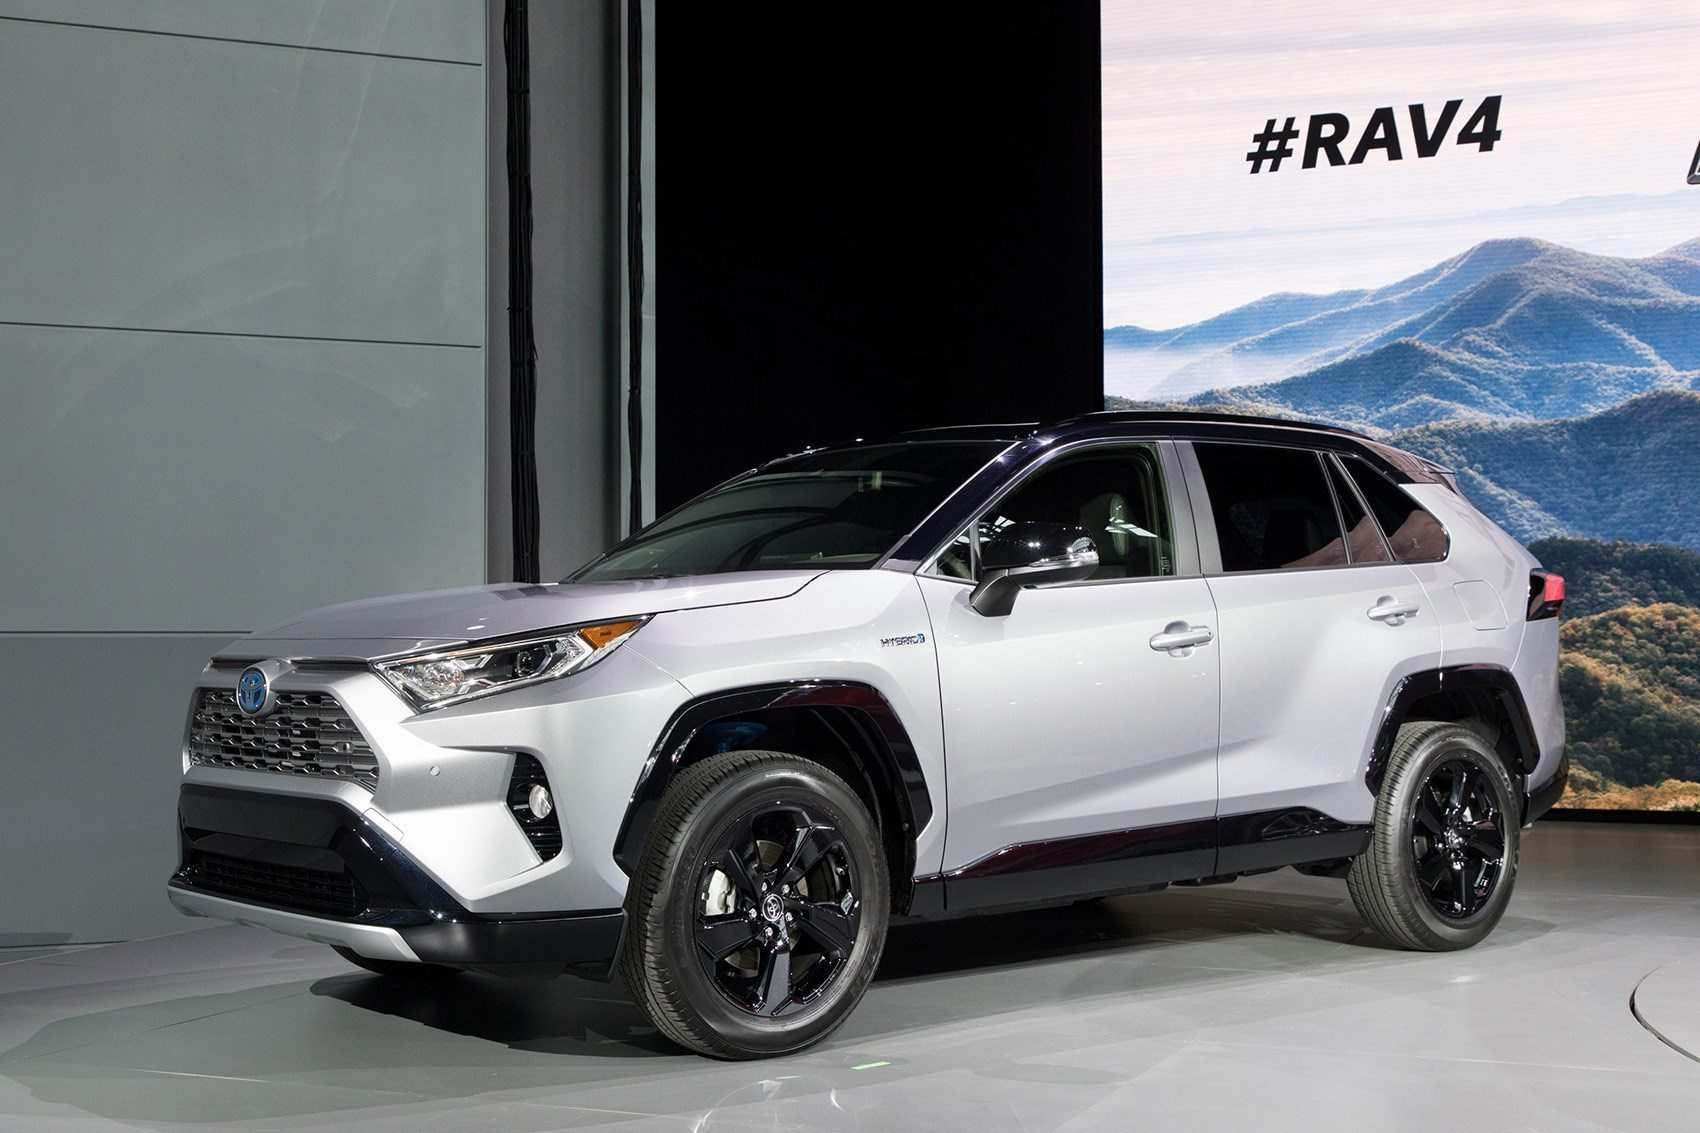 19 All New When Do Toyota 2019 Come Out Photos by When Do Toyota 2019 Come Out